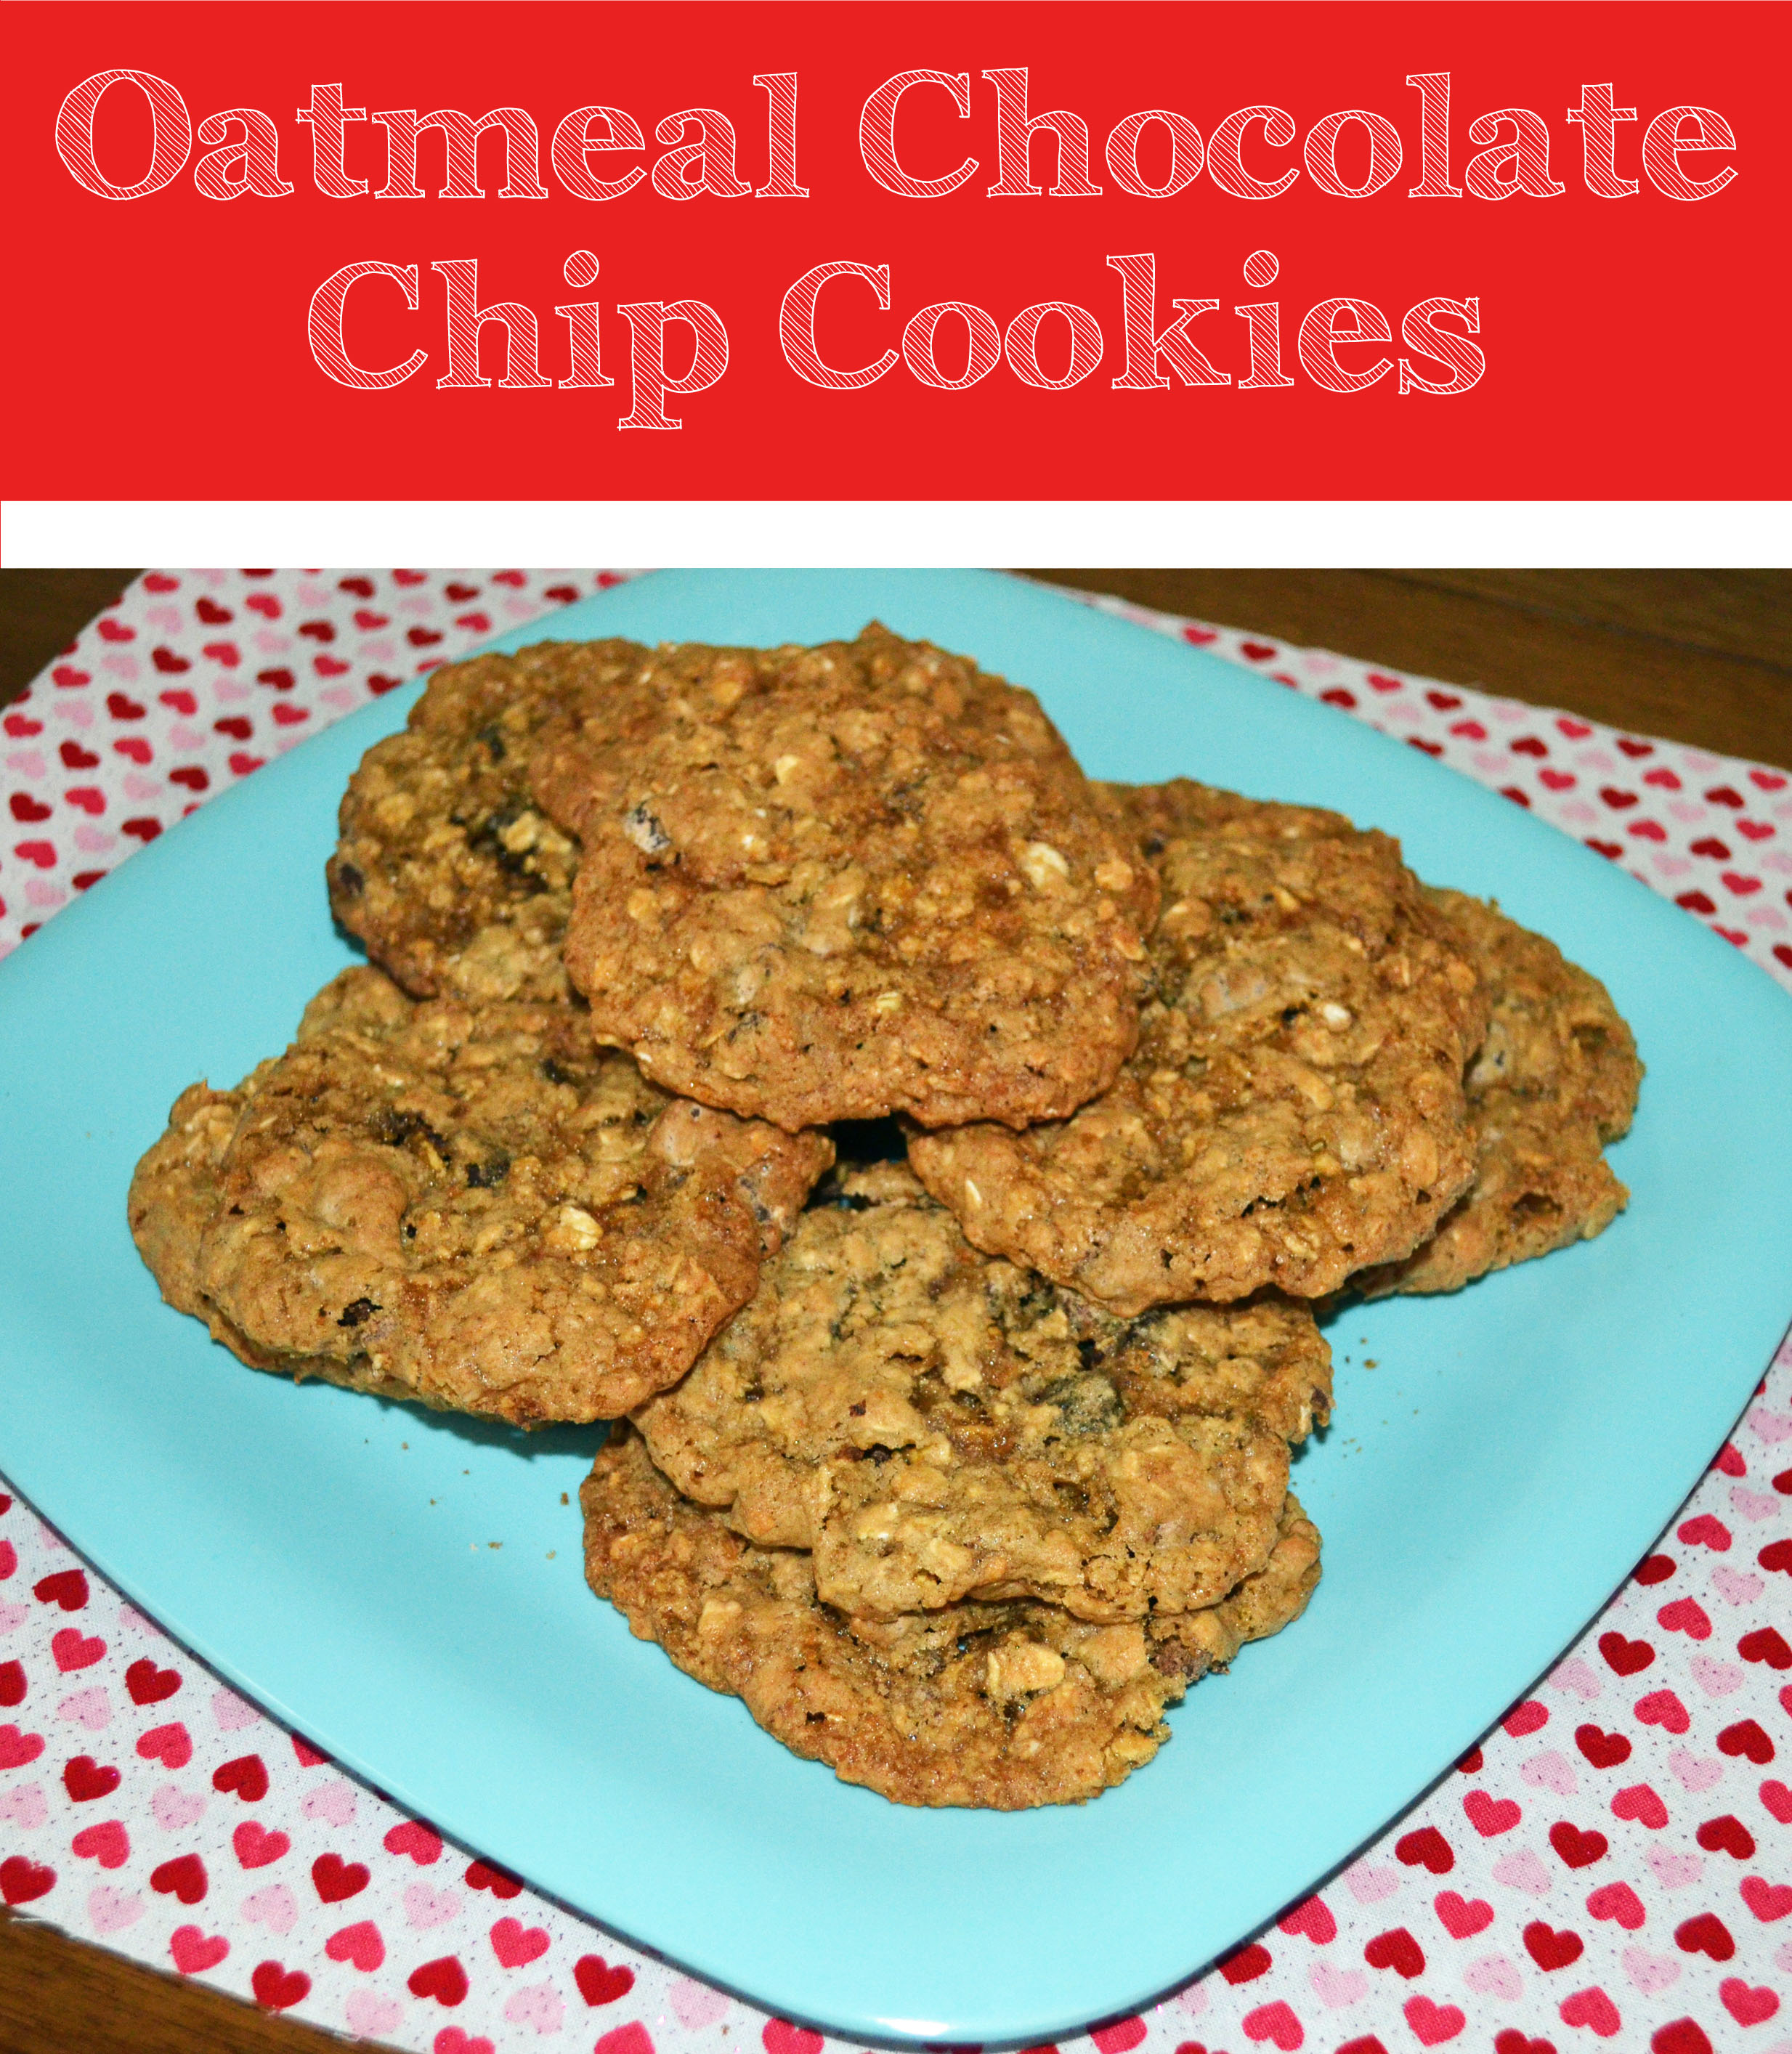 Oatmeal Chocolate Chip Cookie Recipe - Smart Girls DIY